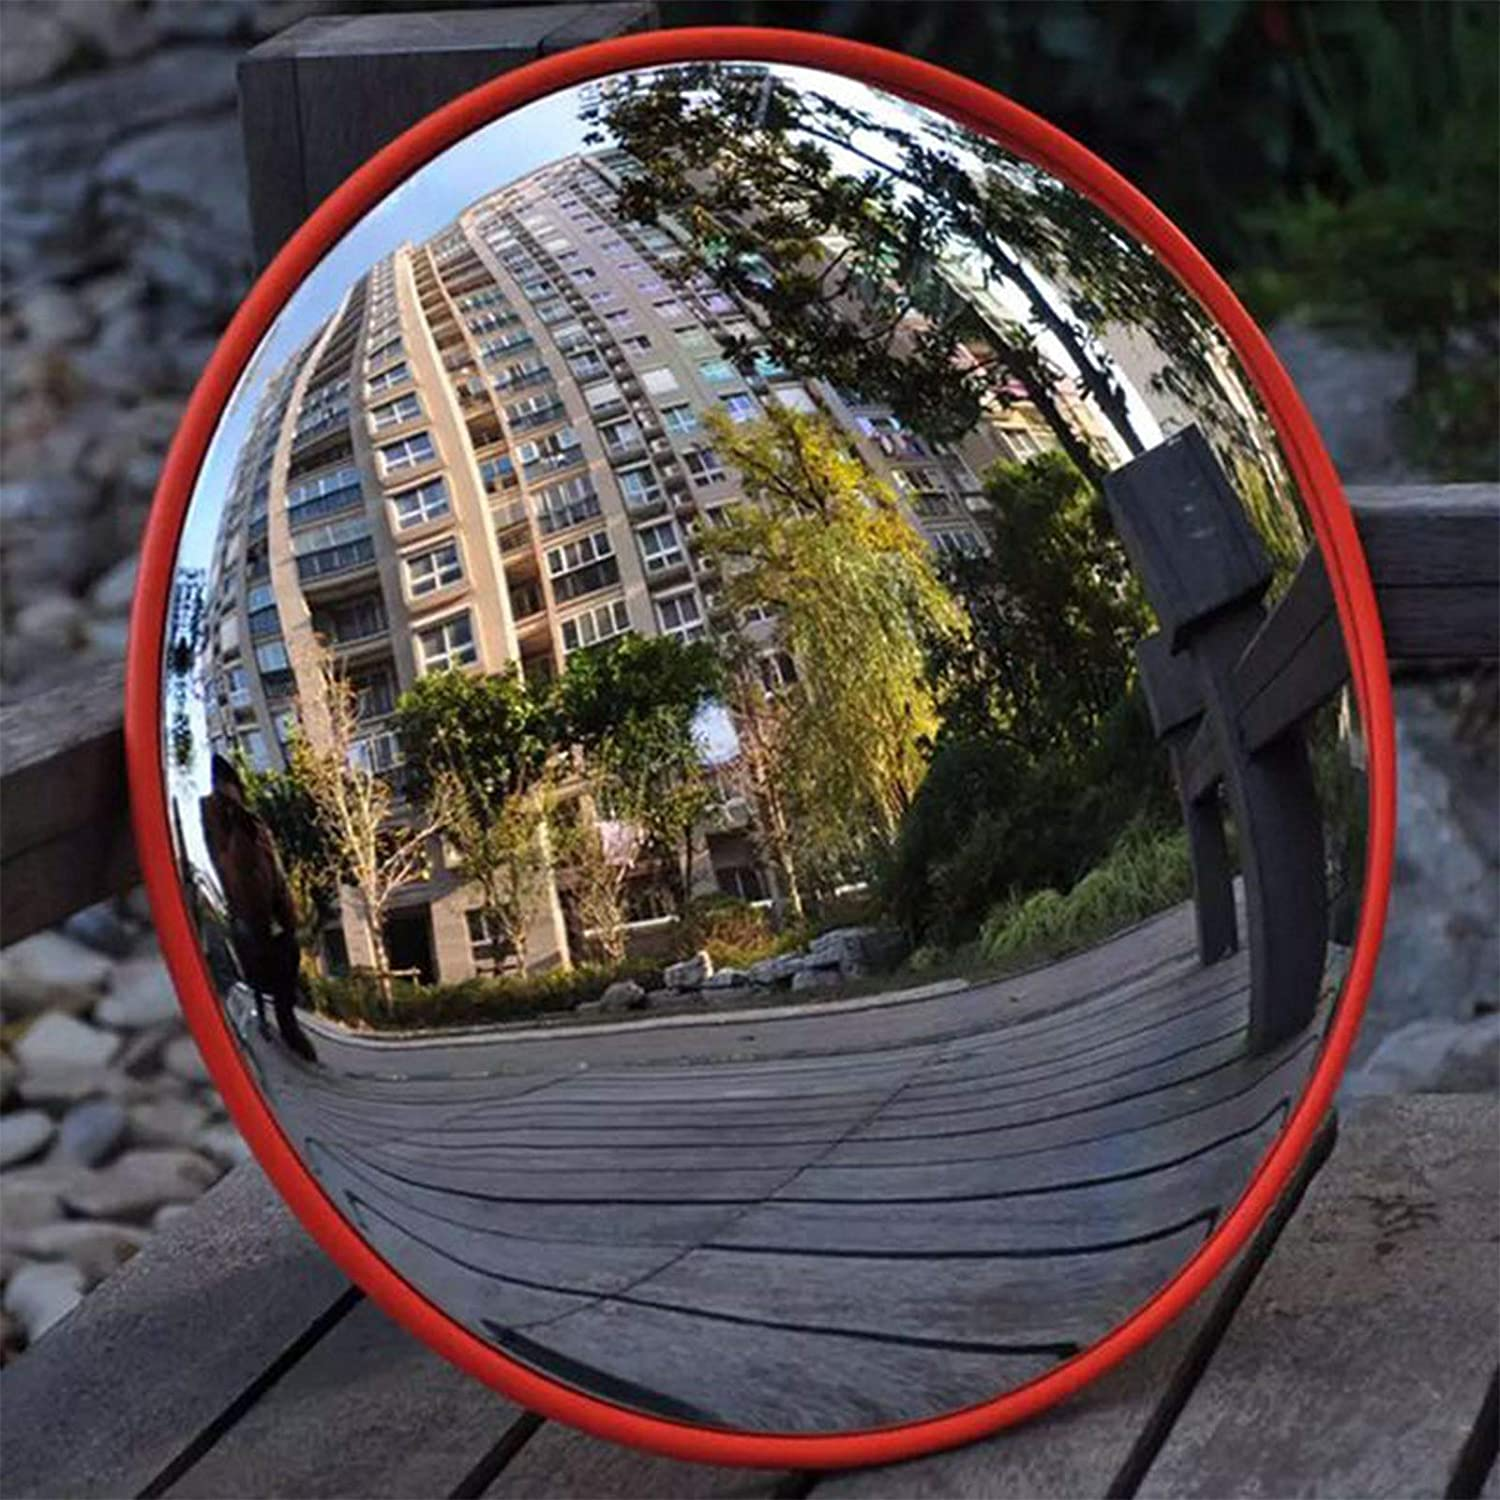 Shop Driveway 180/° View Wide Angle Convex Mirror Road Security Mirrors Observation Mirror Inspection Mirror 60cm for Traffic